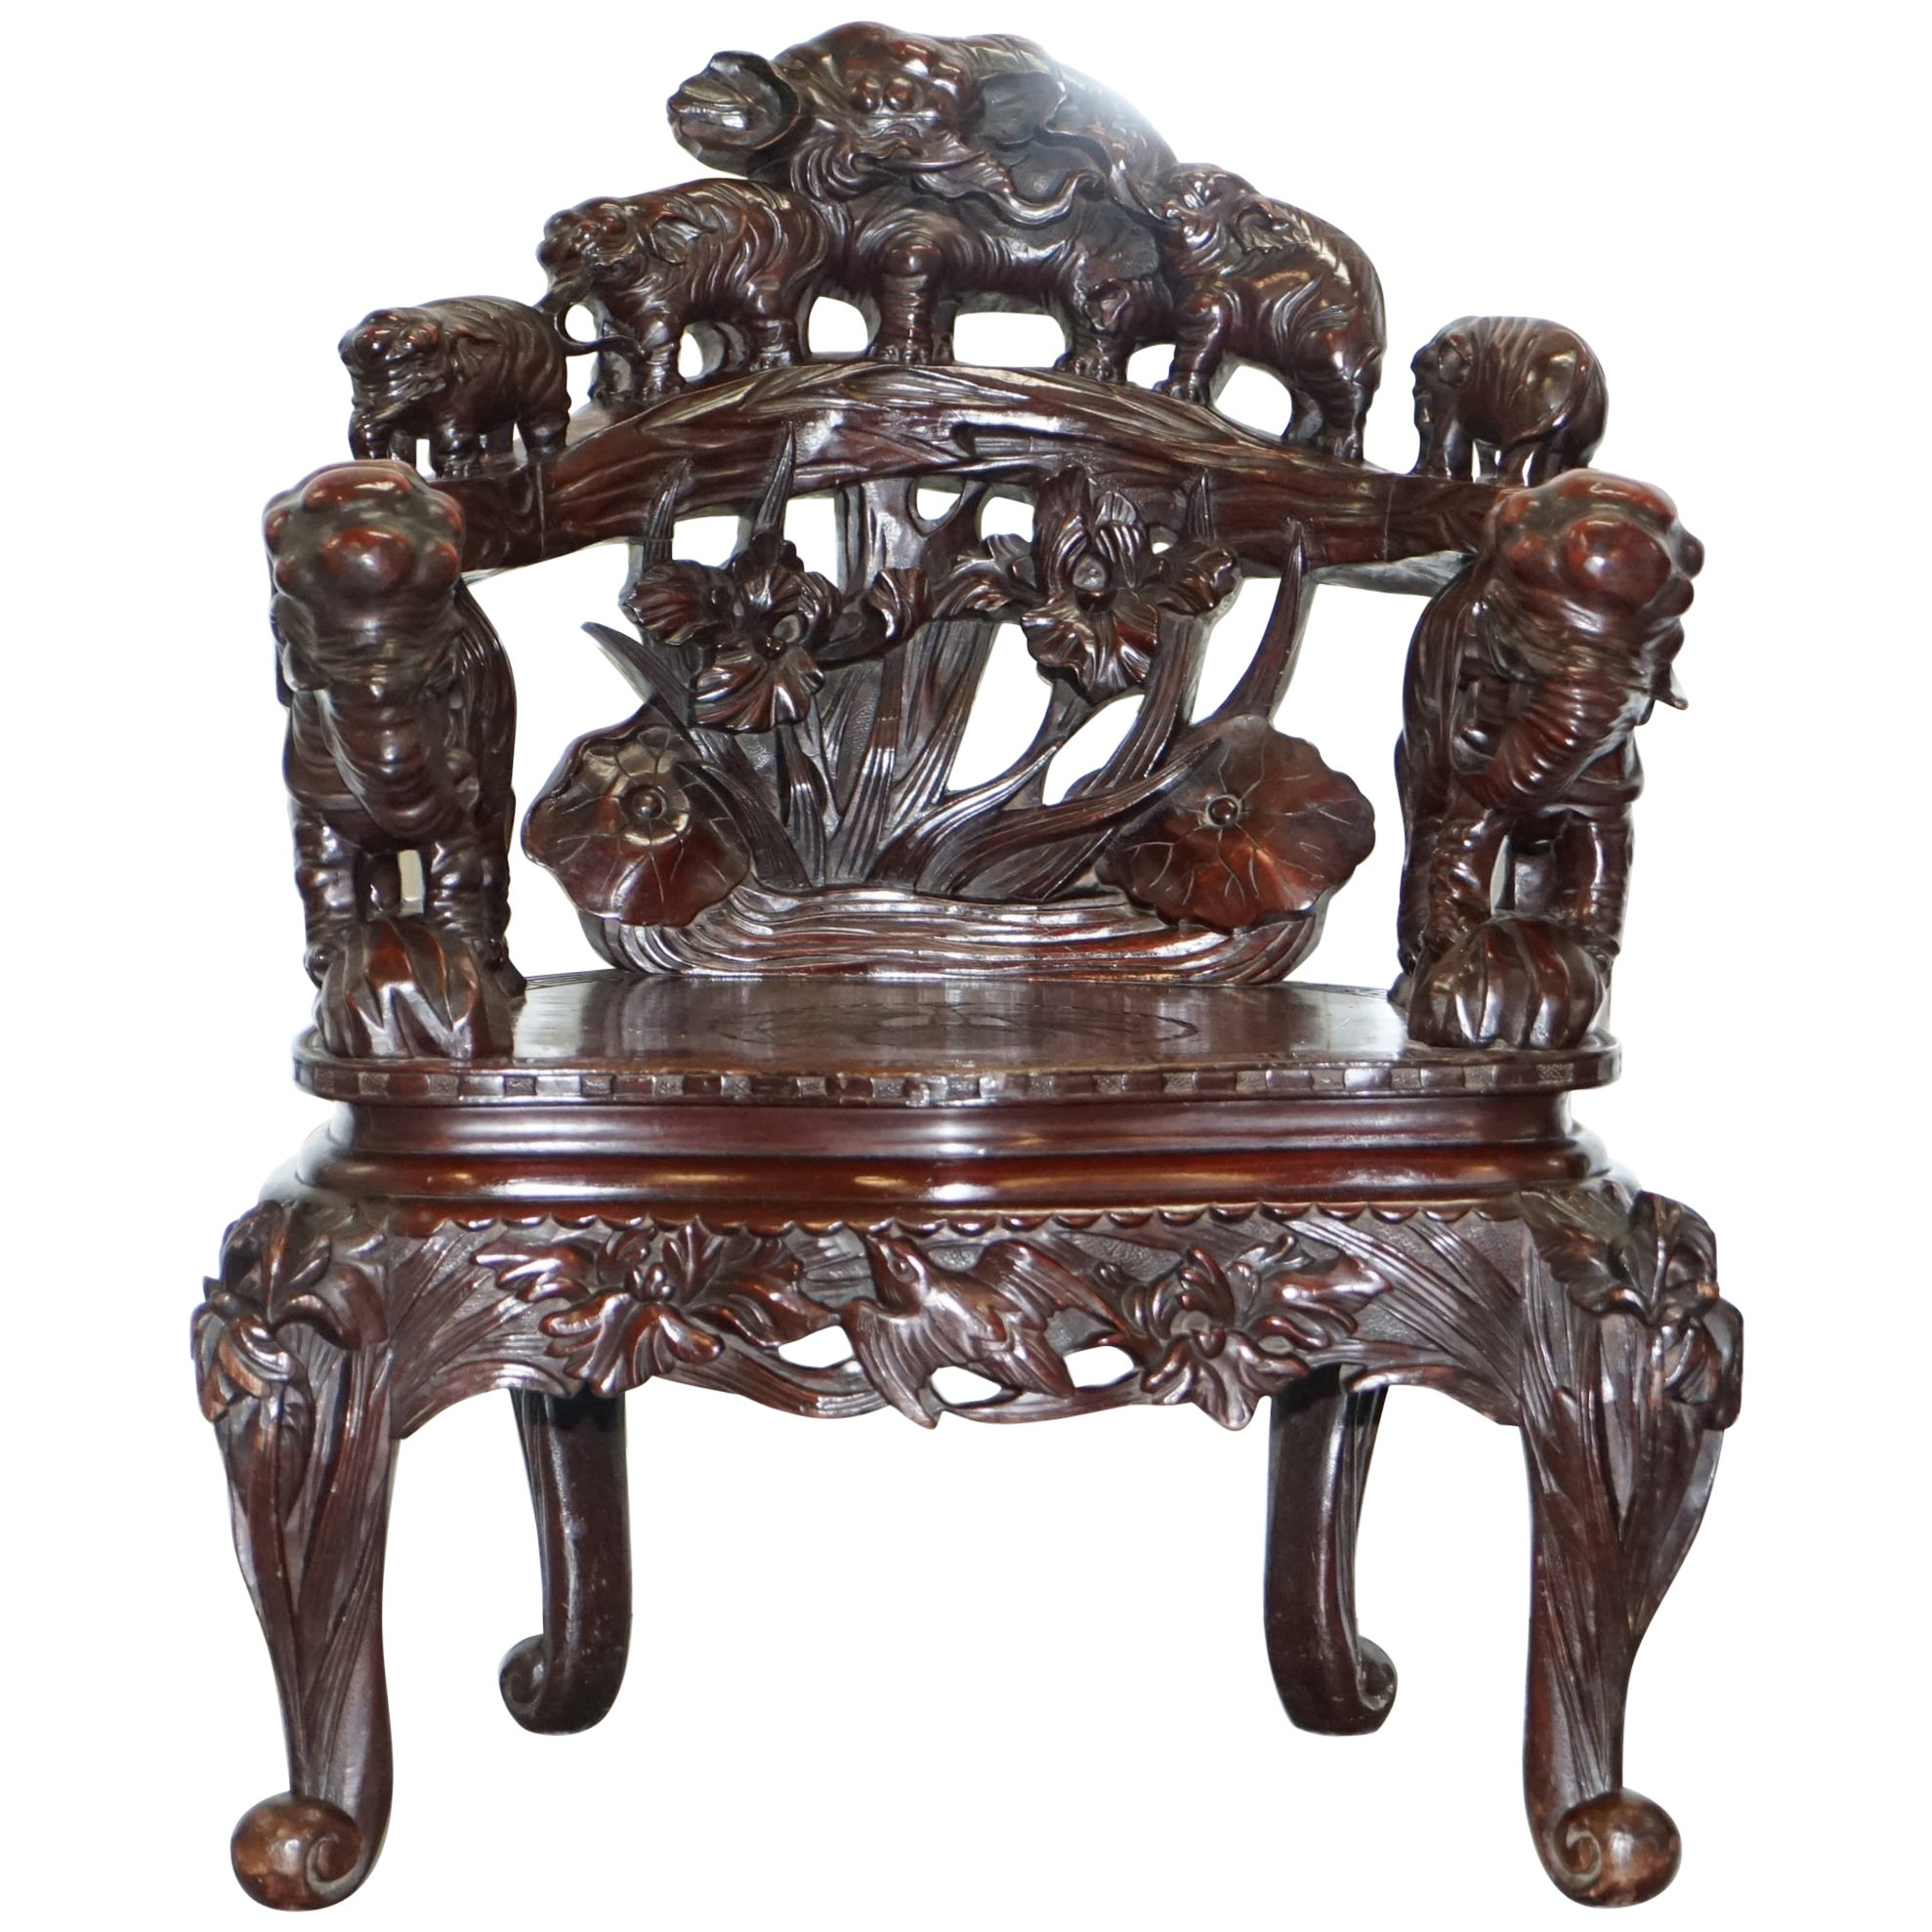 Japanese Chair Rare Qing Dynasty Circa 1860 Heavy Hand Carved Elephant Chair Japanese Chinese